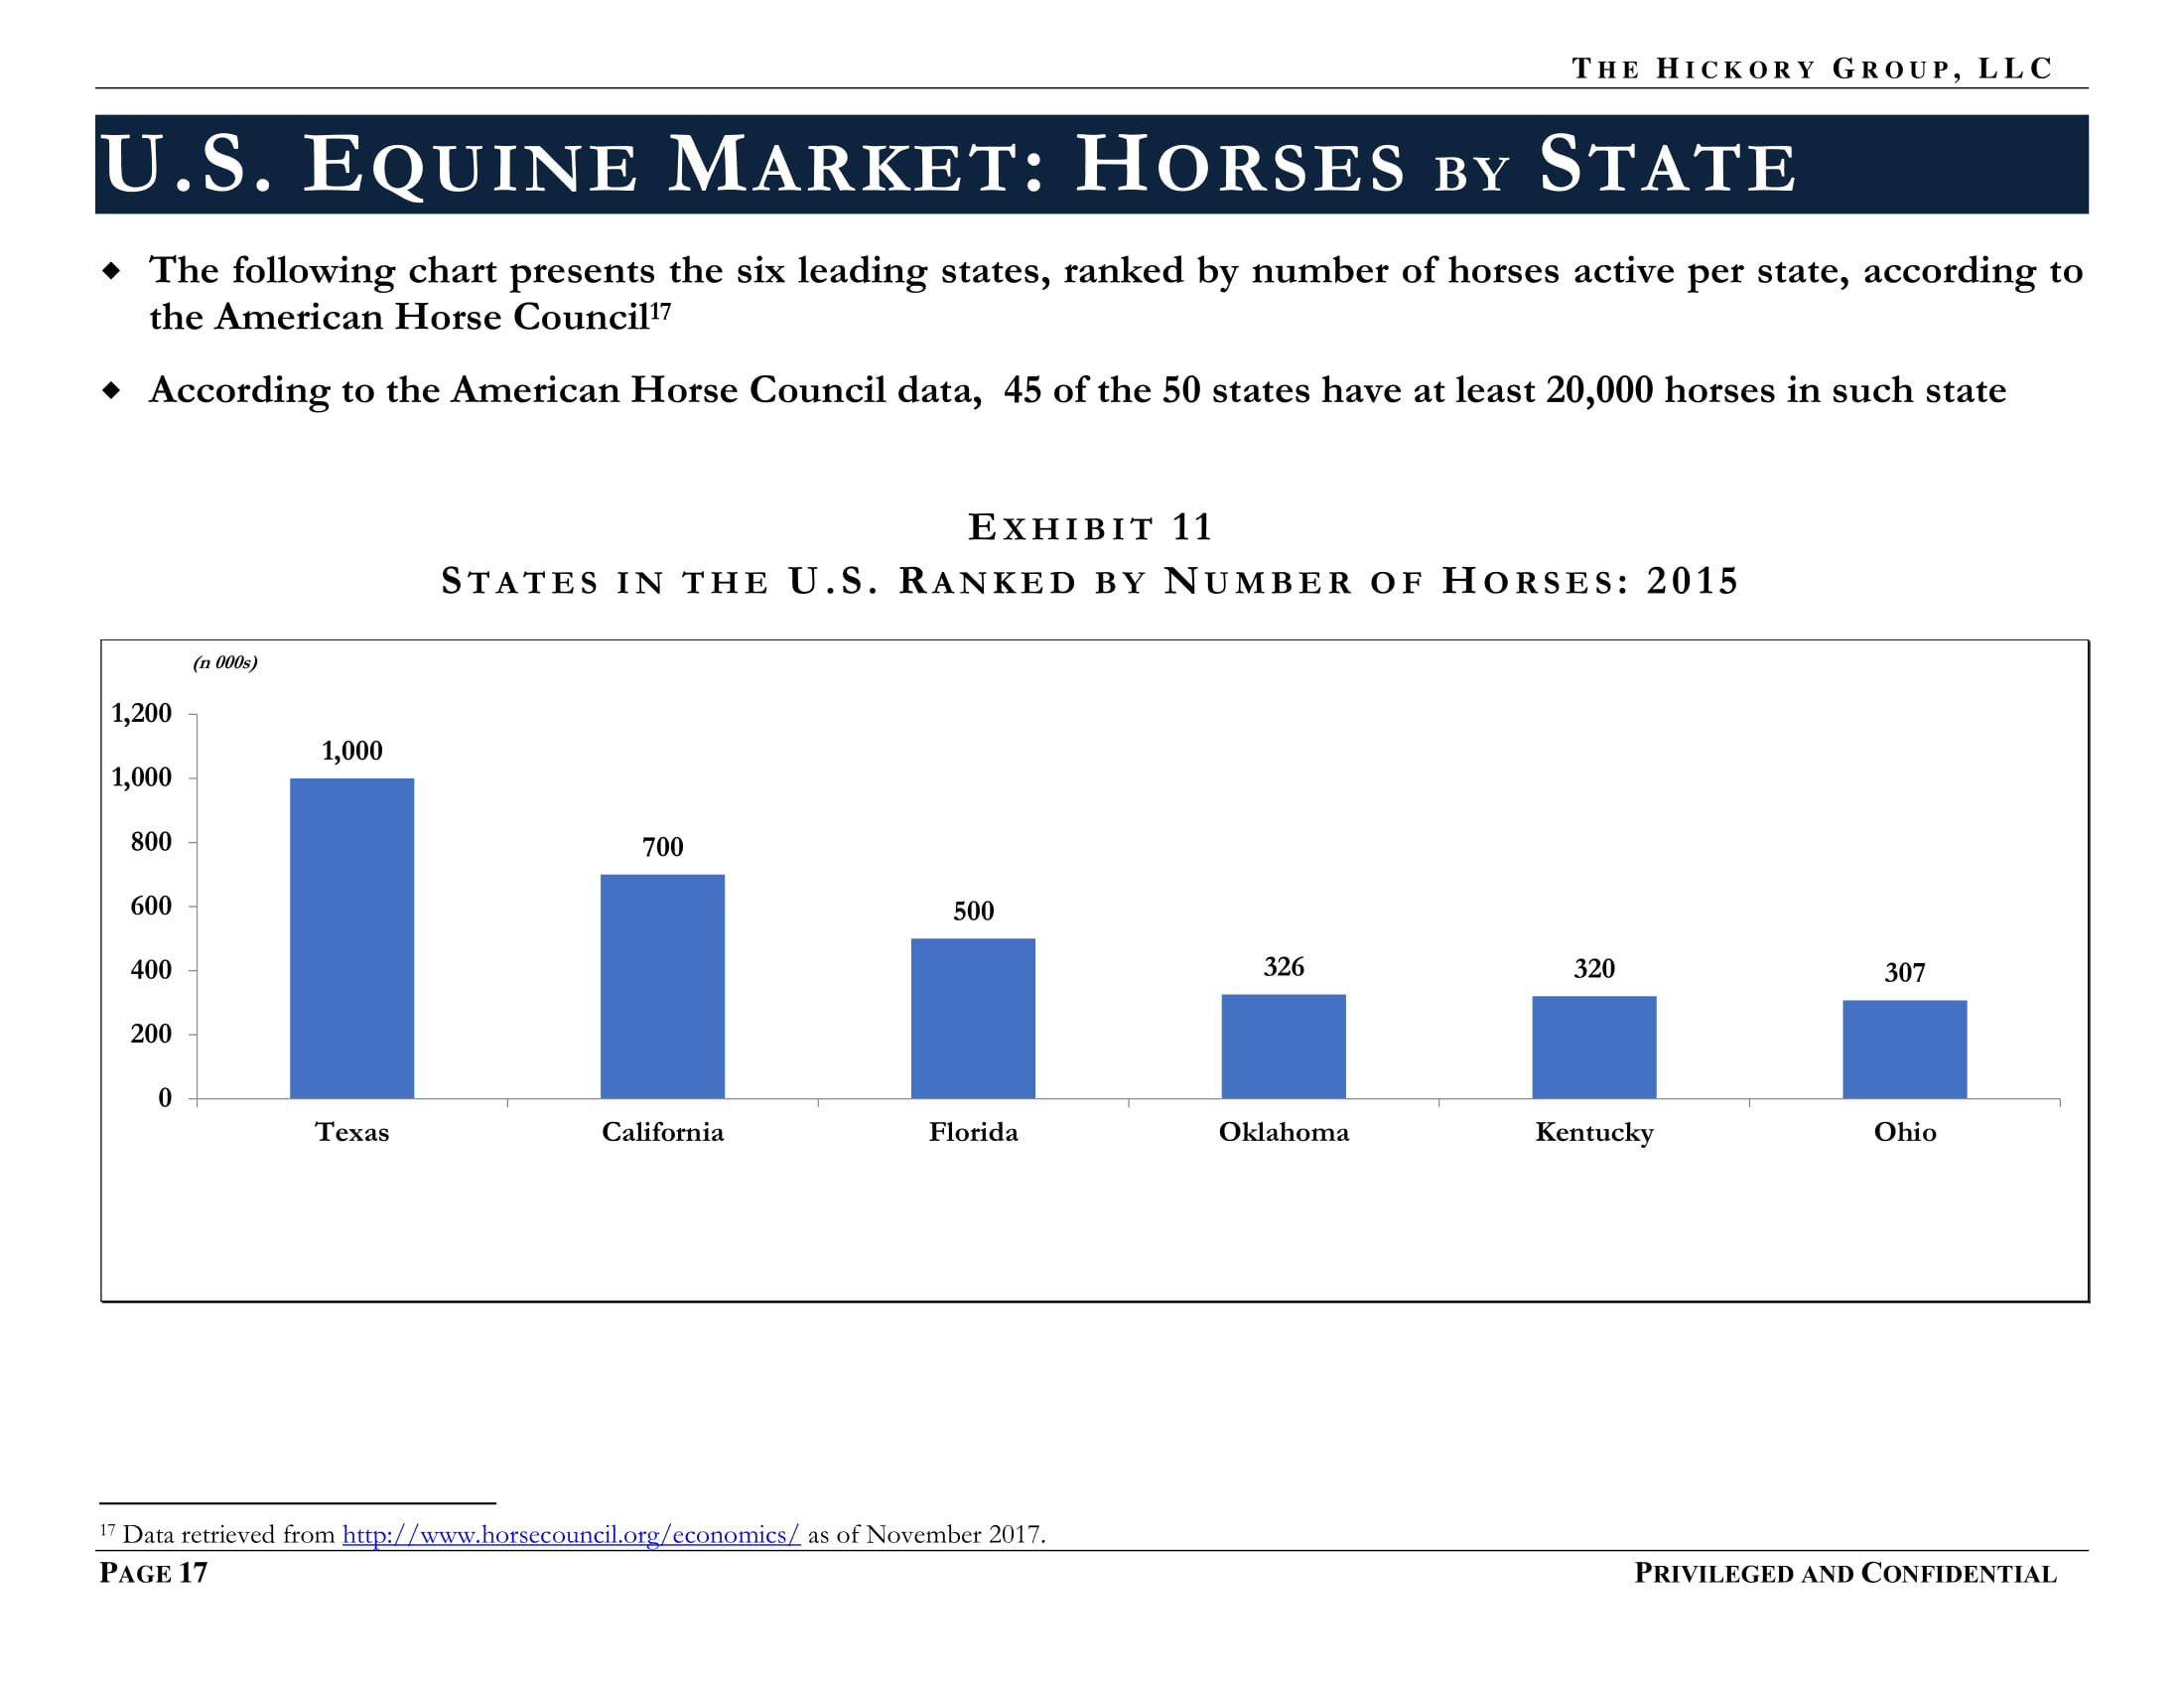 PUBLIC FINAL _Millennials and Equine Market Summary (15 November 2017) Privileged and Confidential-17.jpg